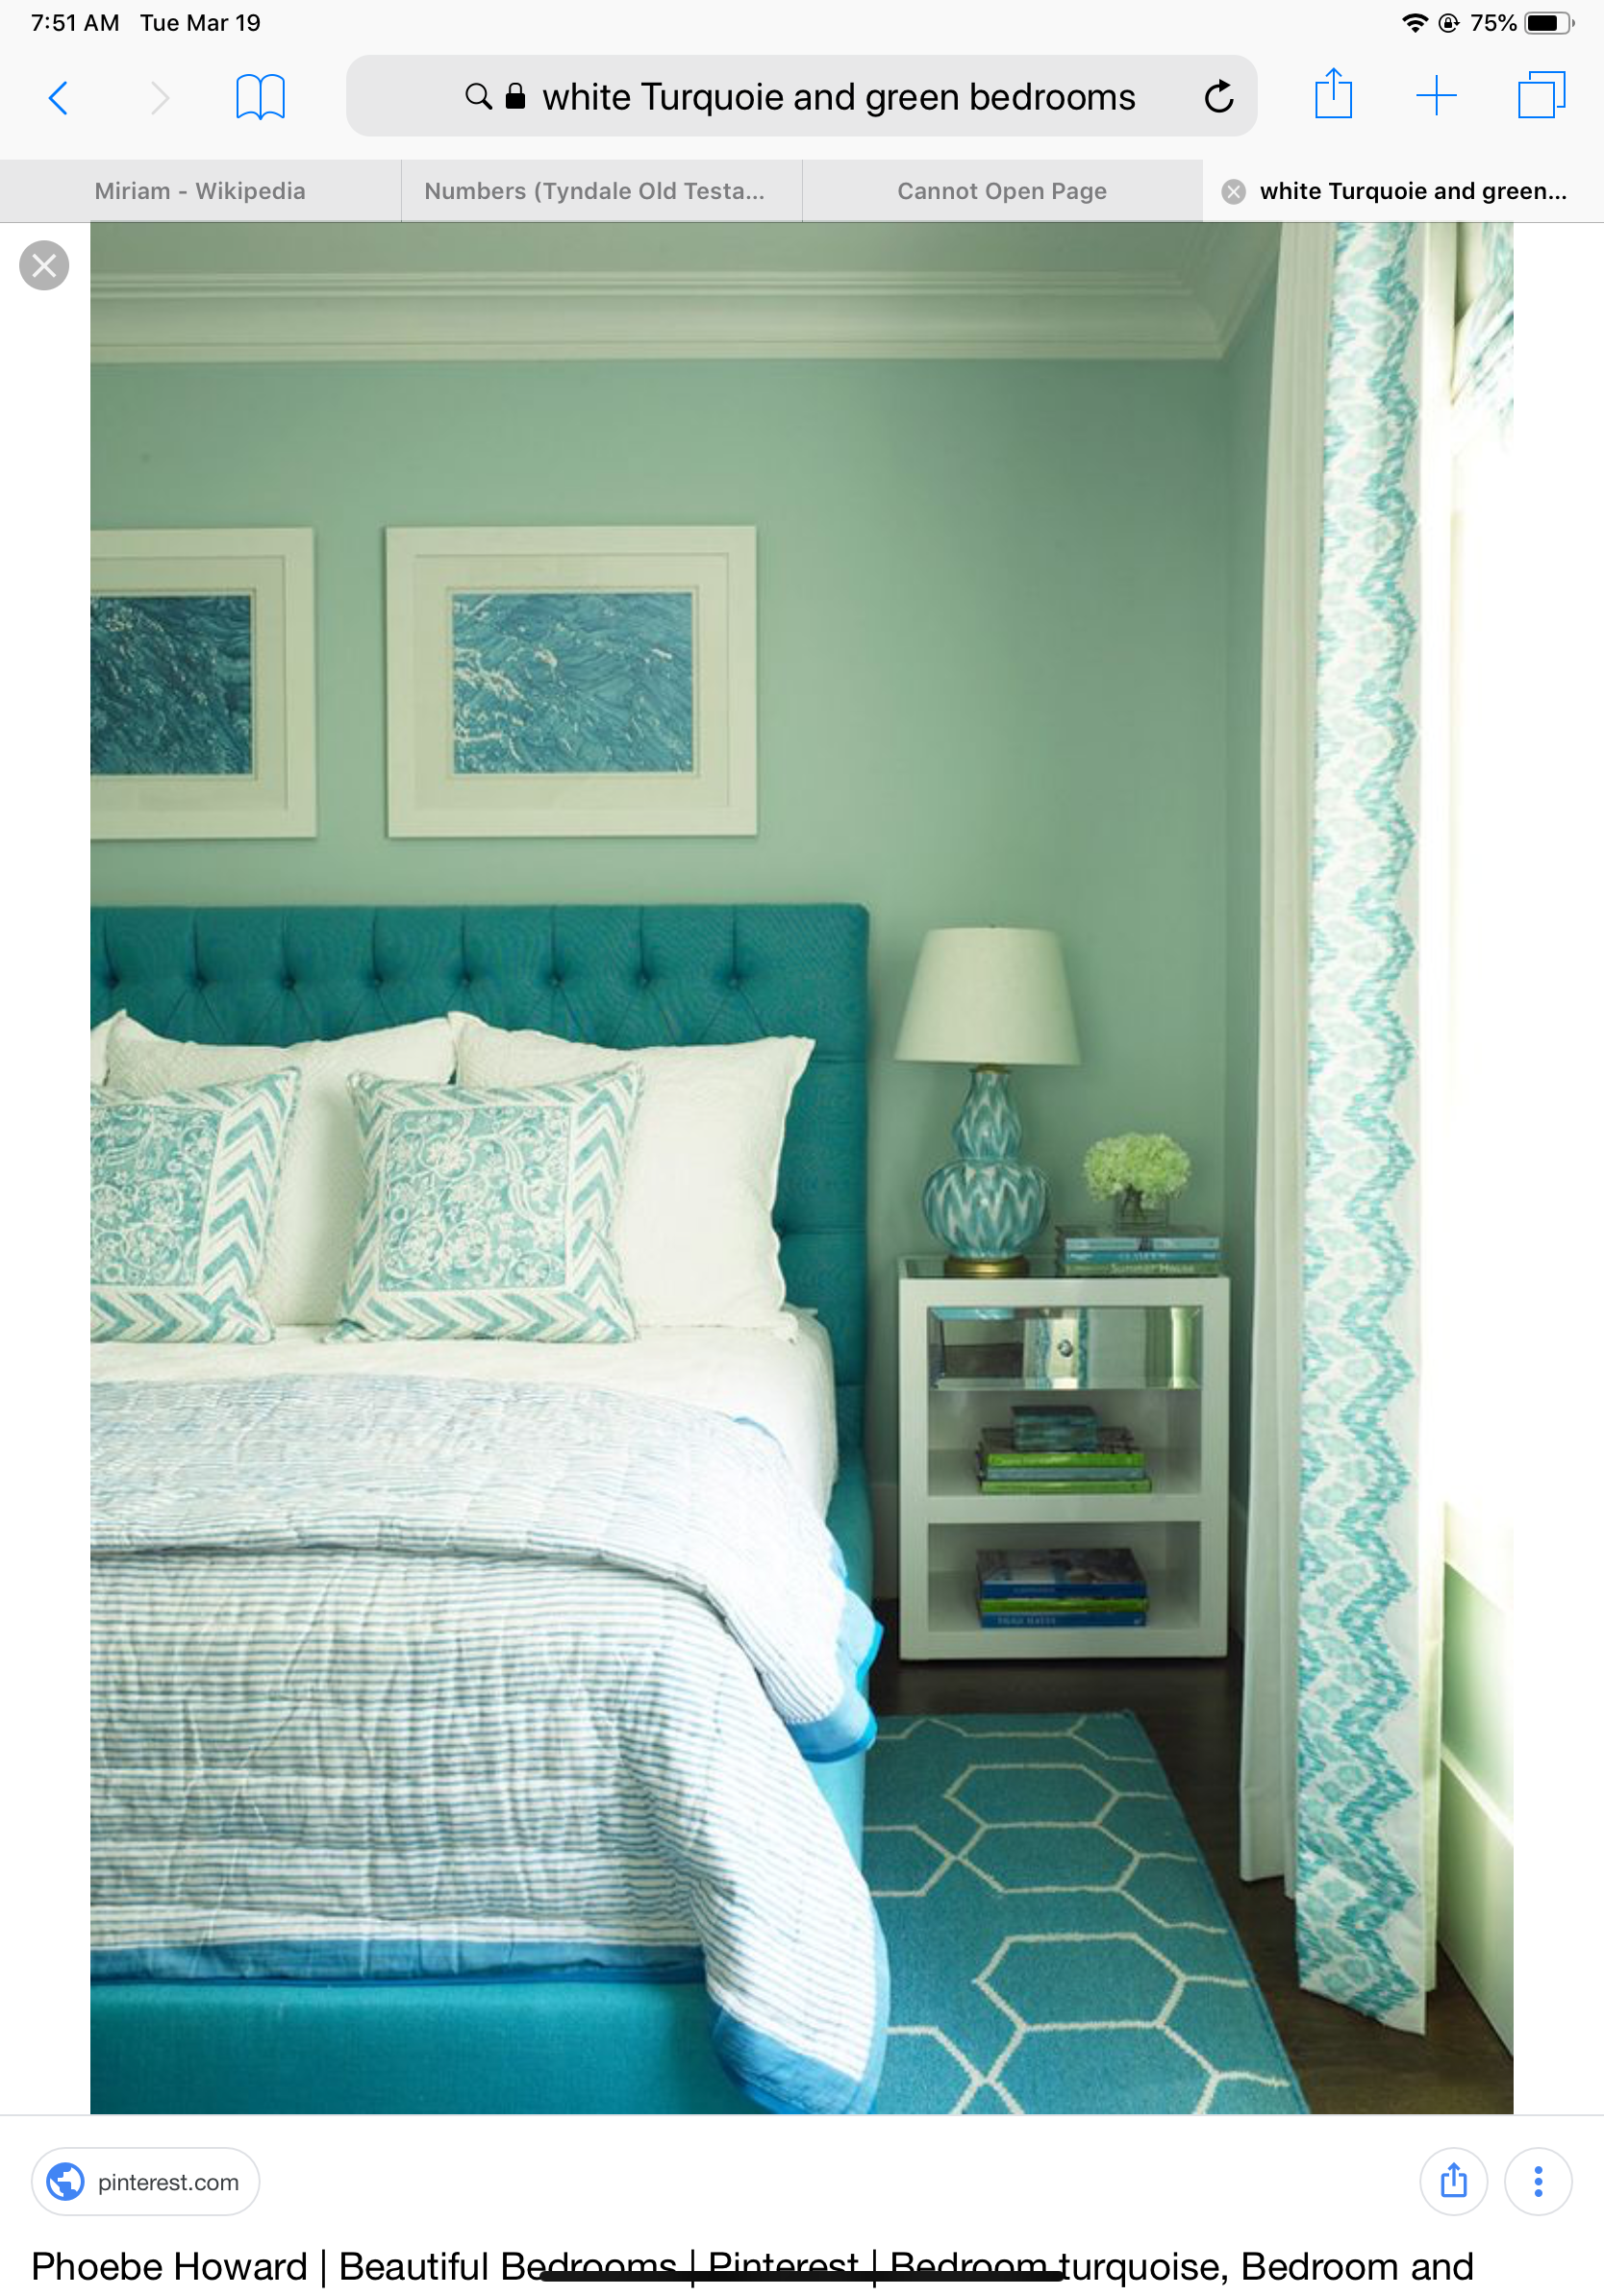 Pin By Brenda Hudson On Paint Turquoise Room Turquoise Bedroom Decor Bedroom Turquoise